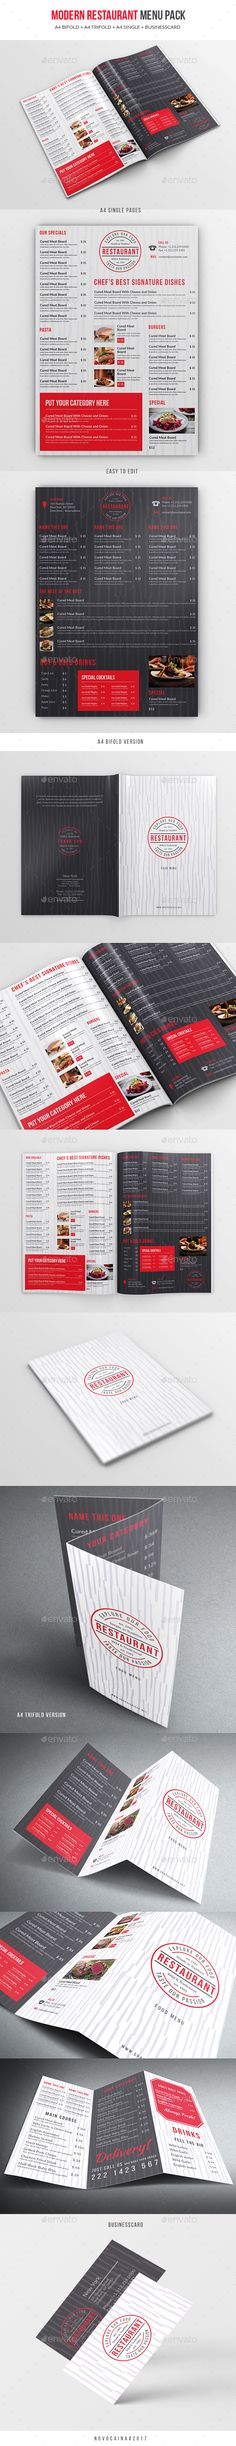 Modern Restaurant Menu Pack ( A4 Bifold + Trifold + Single Page A4 + BC) - Food Menus Print Templates Download here : https://graphicriver.net/item/modern-restaurant-menu-pack-a4-bifold-trifold-single-page-a4-bc/19292232?s_rank=67&ref=Al-fatih